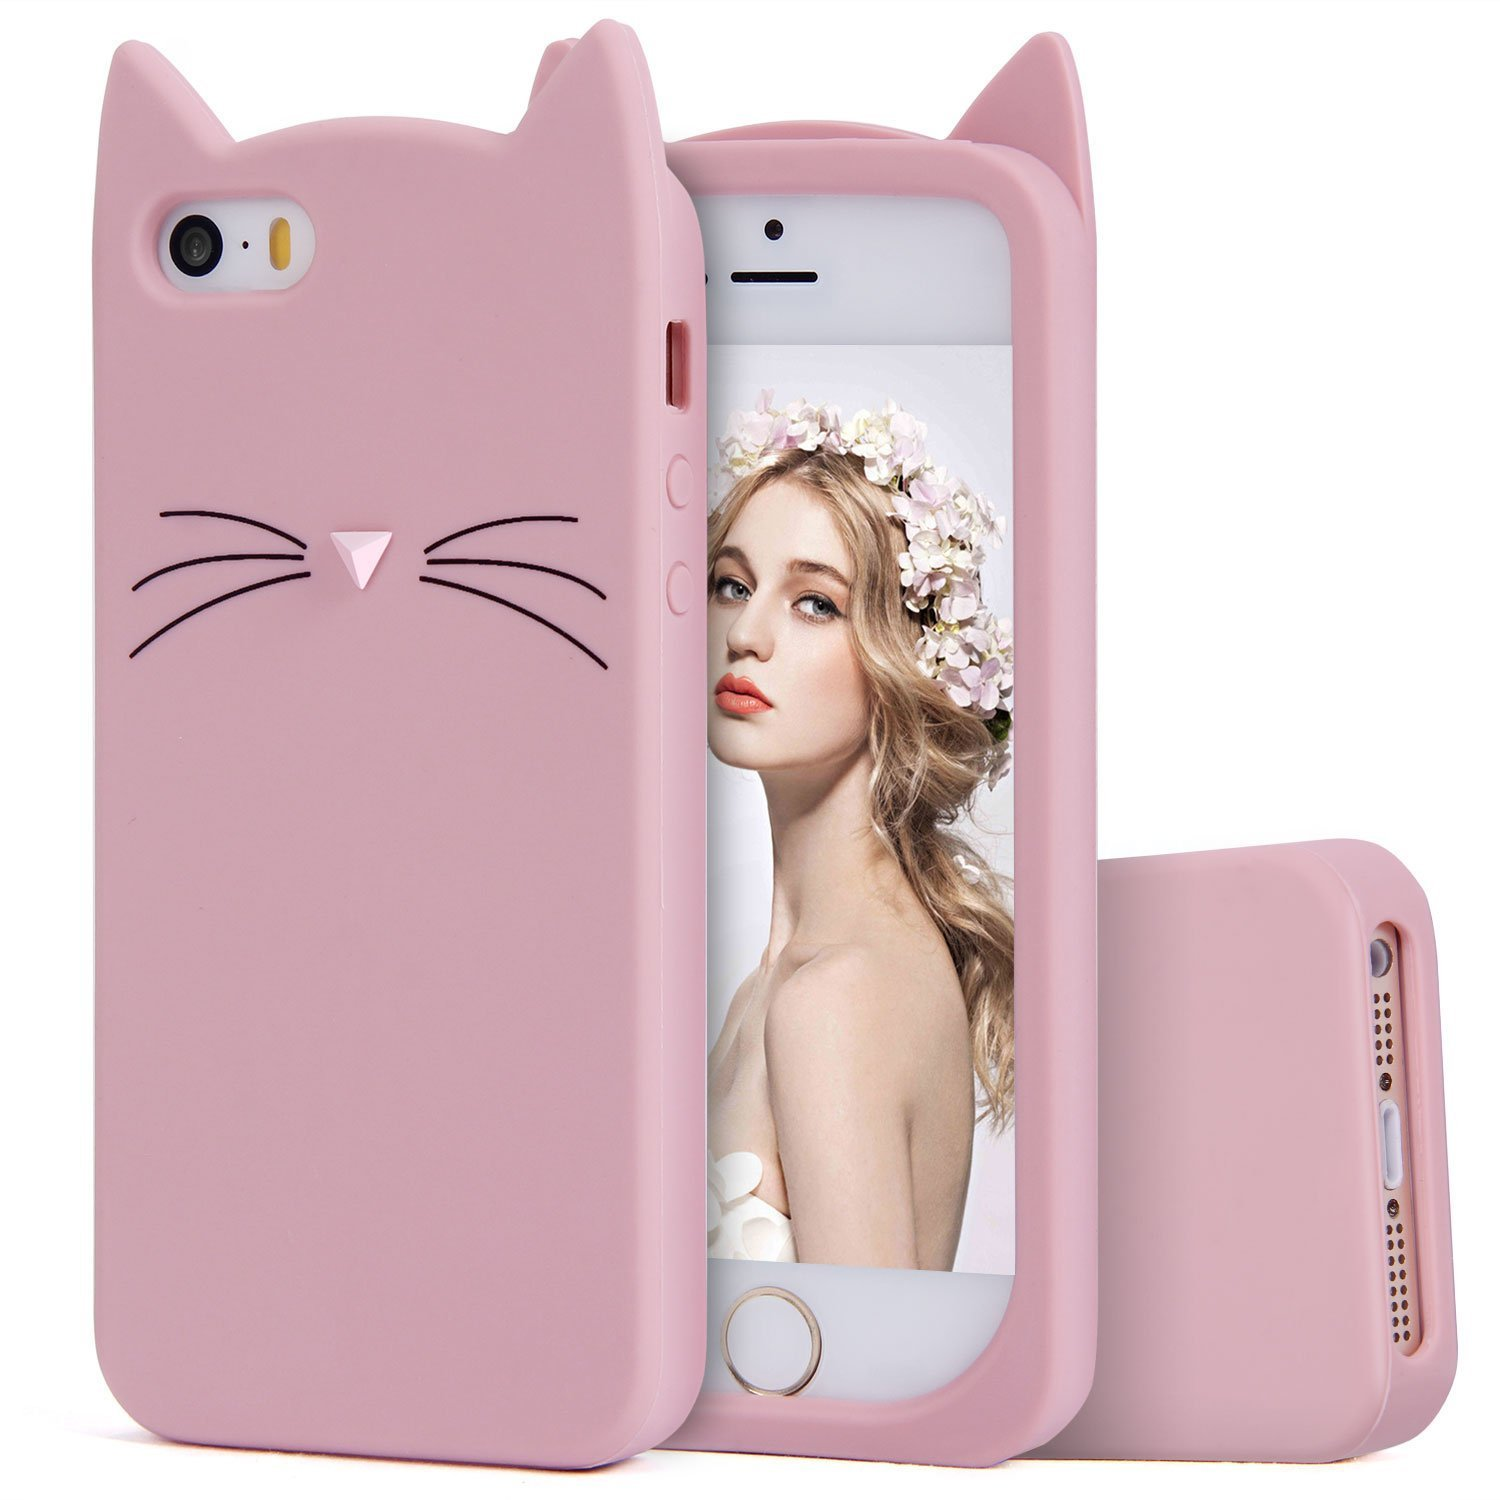 daa317a5cb4c22 Amazon.com: iPhone SE Case, MC Fashion Cute 3D Pink Meow Party Cat Ears  Kitty Whiskers Soft Silicone Case for iPhone 5/5S/SE (Cat Whiskers-Pink):  Cell ...